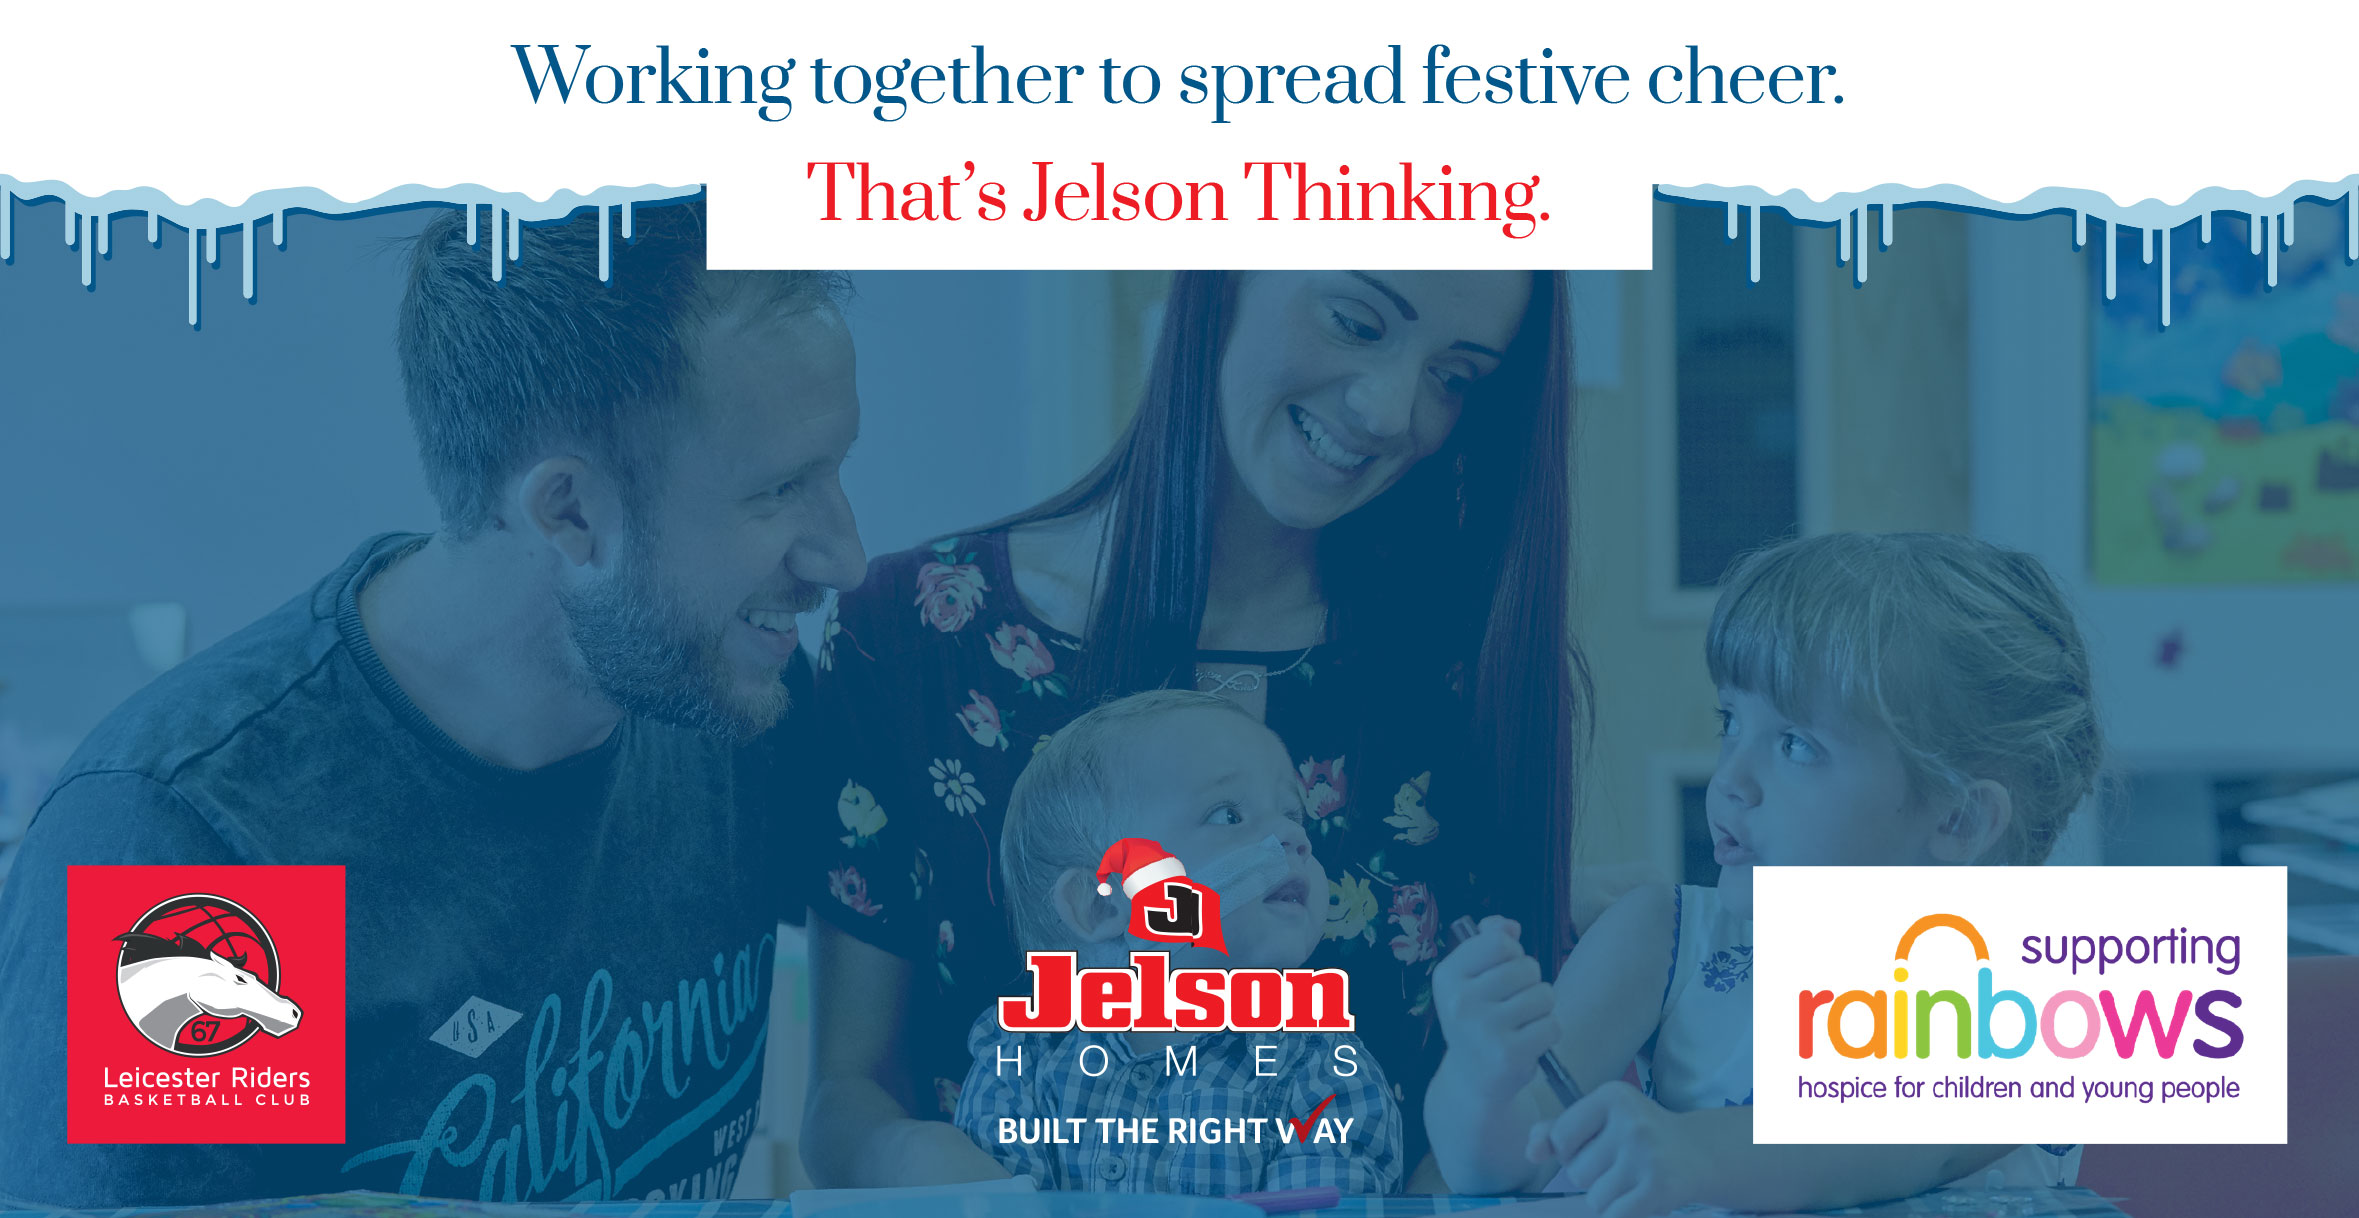 Jelson Homes 2018 Christmas appeal